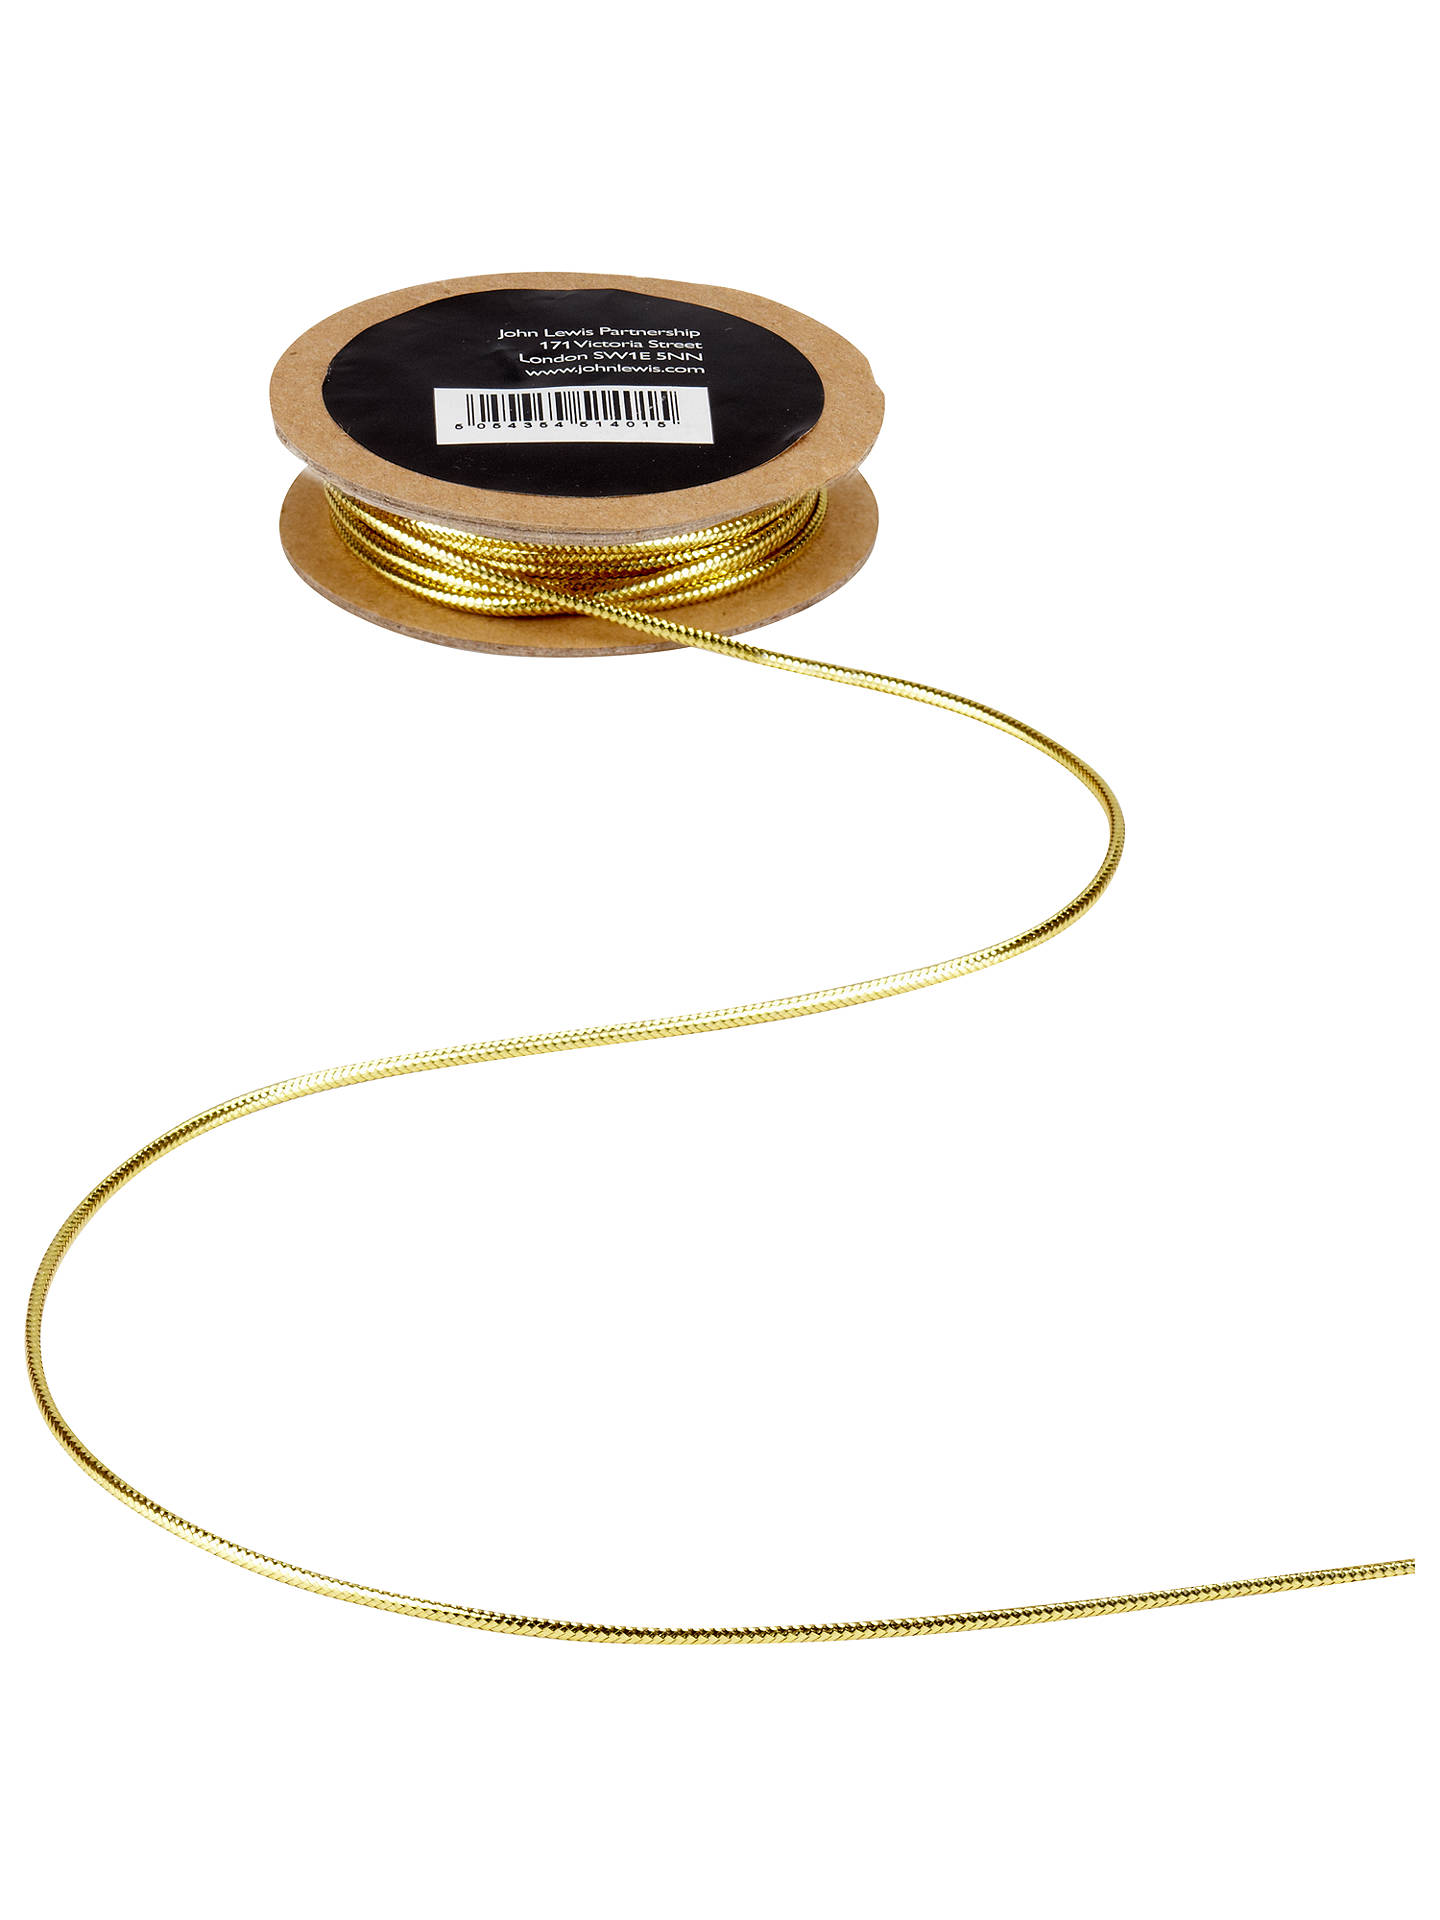 Buy John Lewis & Partners Shiny Cord, 5m, Gold Online at johnlewis.com